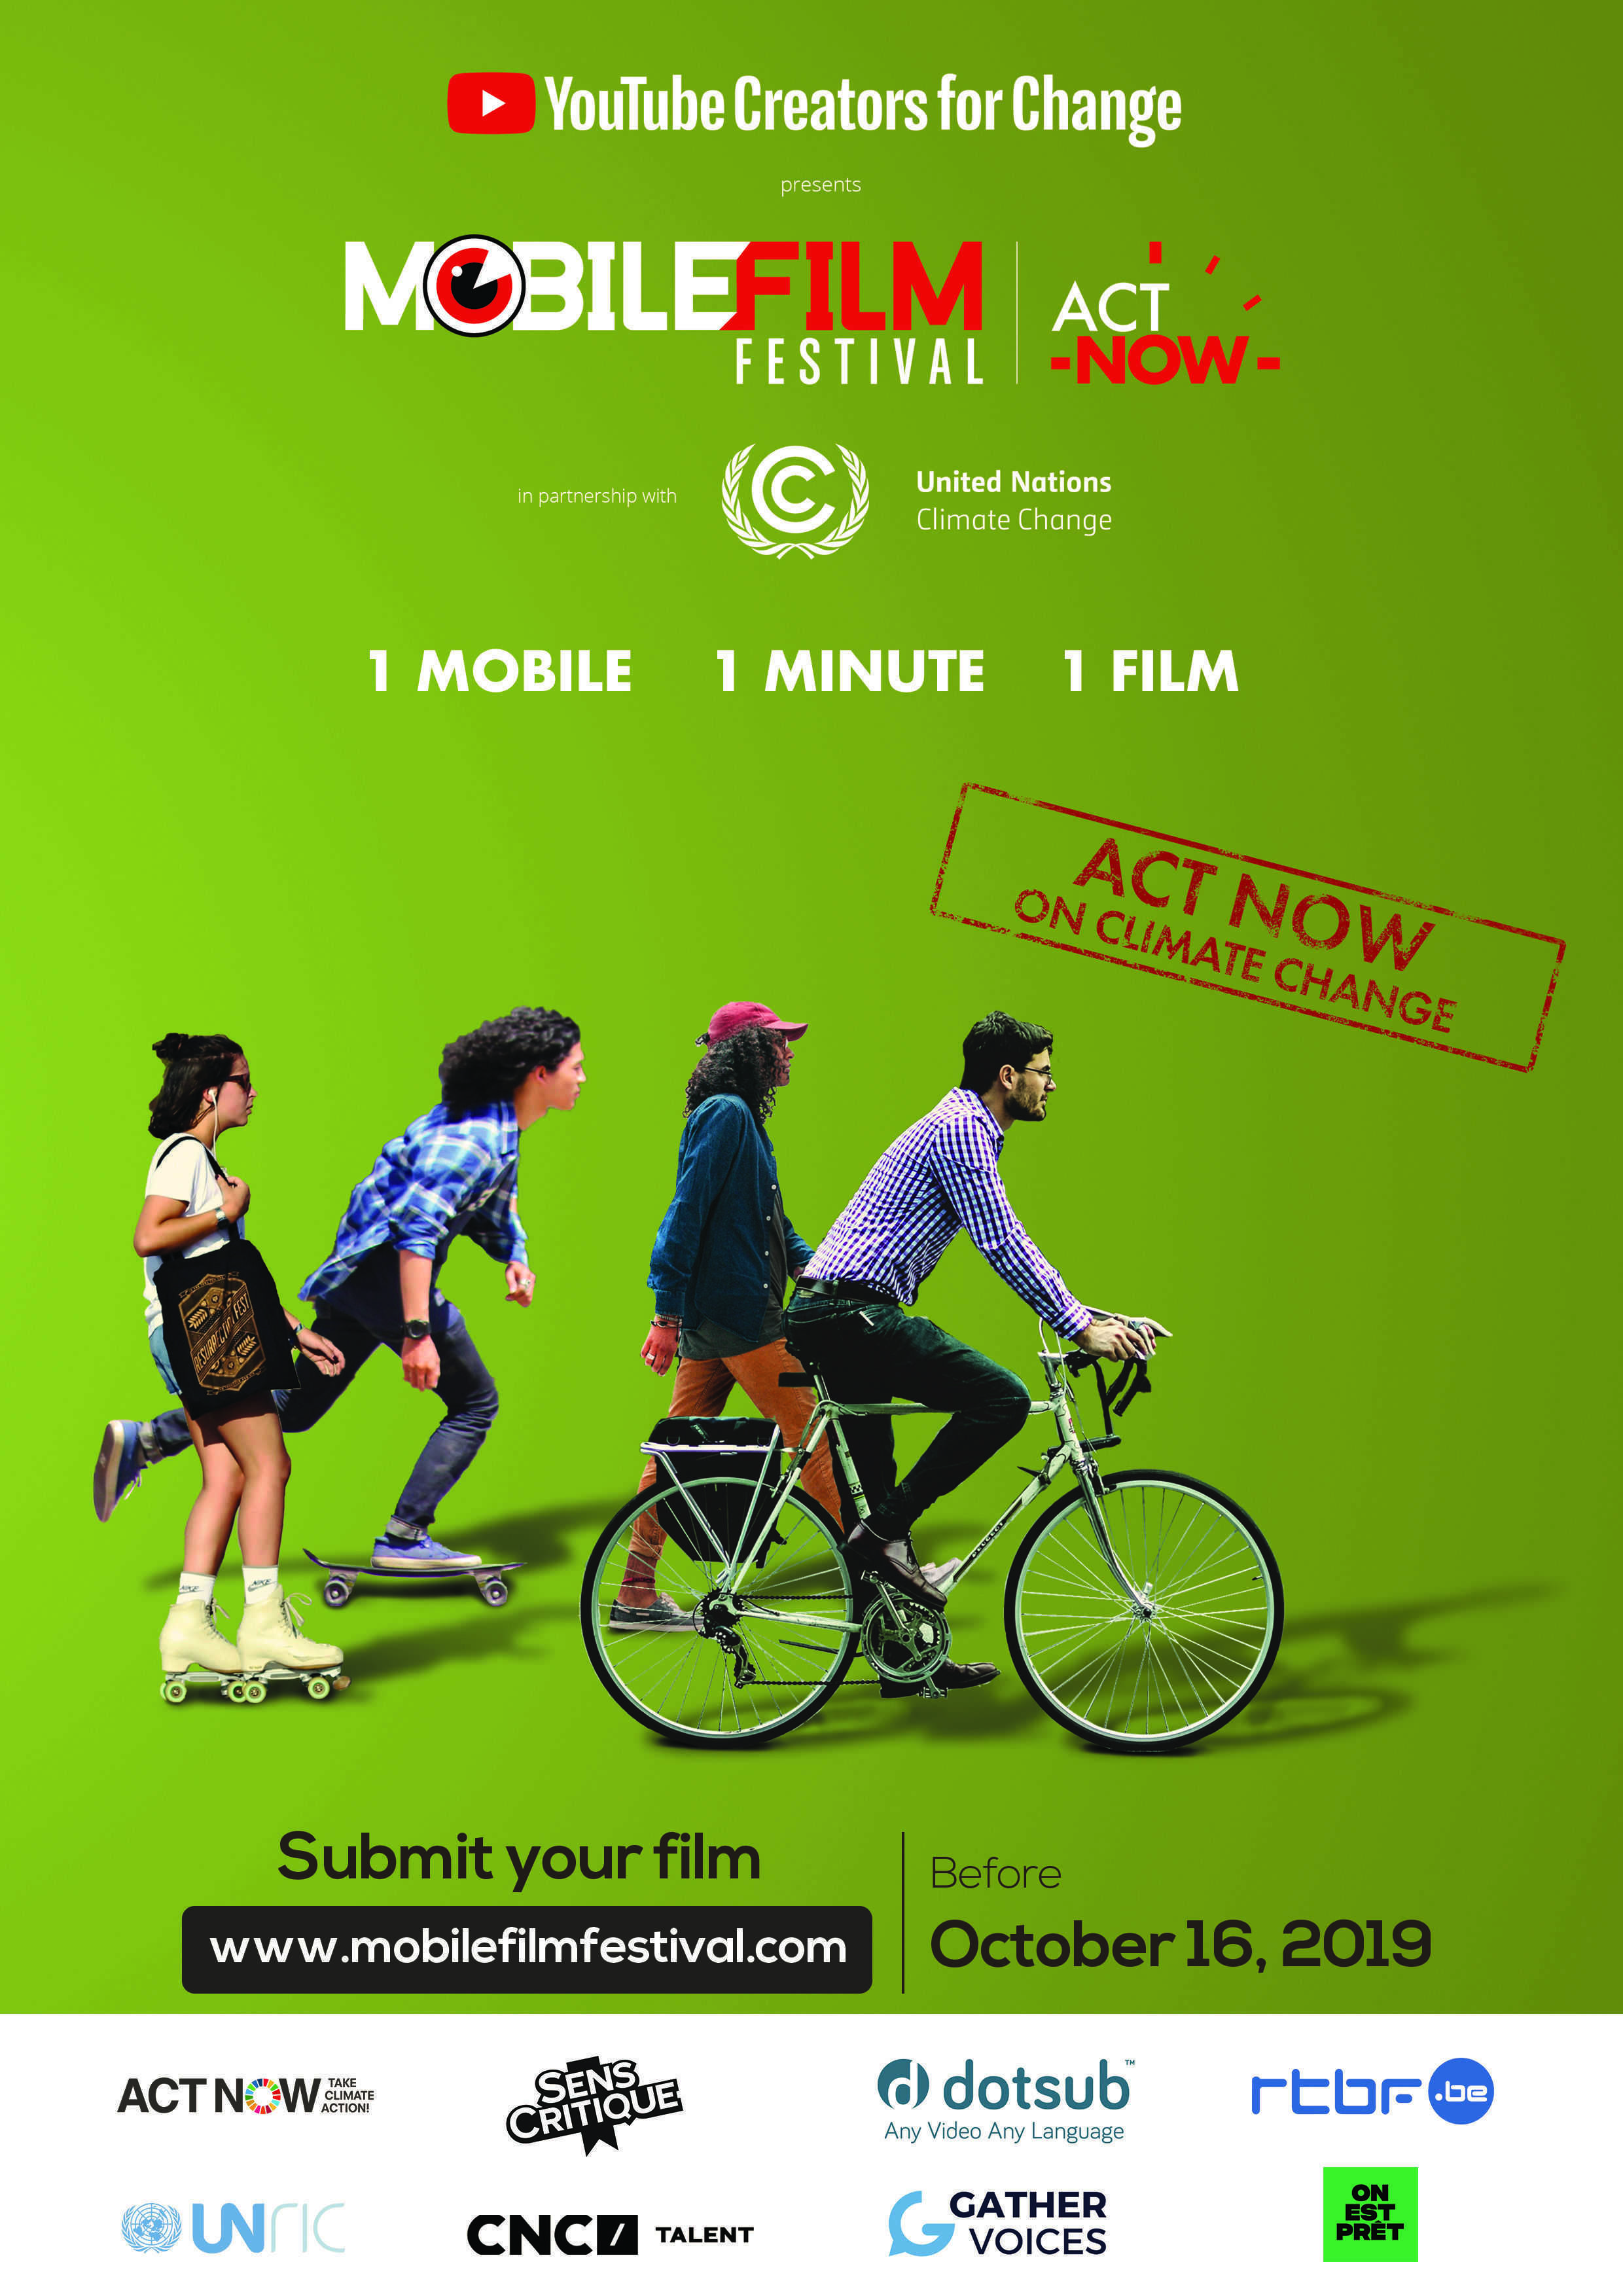 MOBILE FILM FESTIVAL ACT NOW